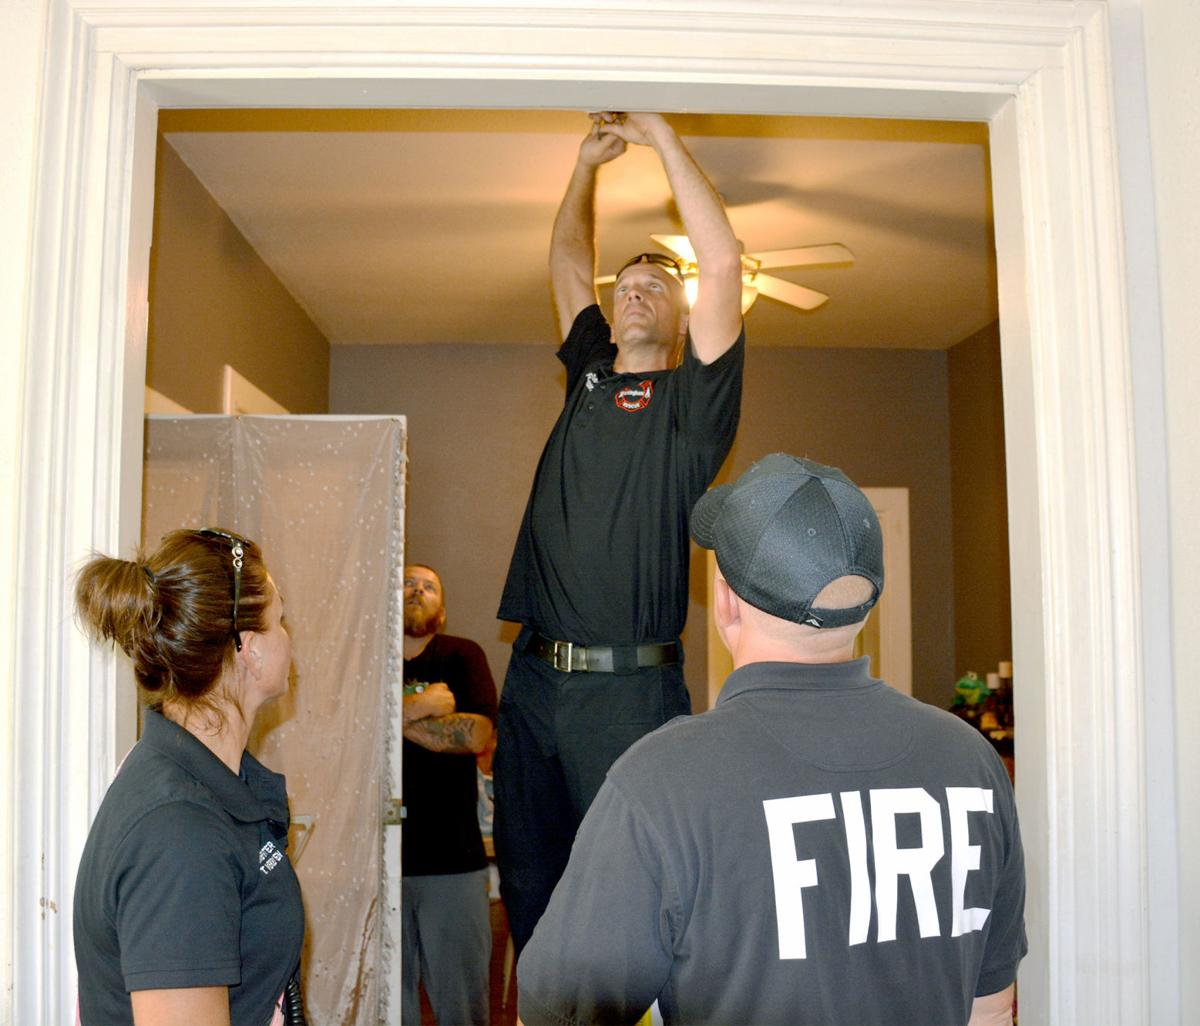 """Effingham fire participates in """"A Day of Service"""""""